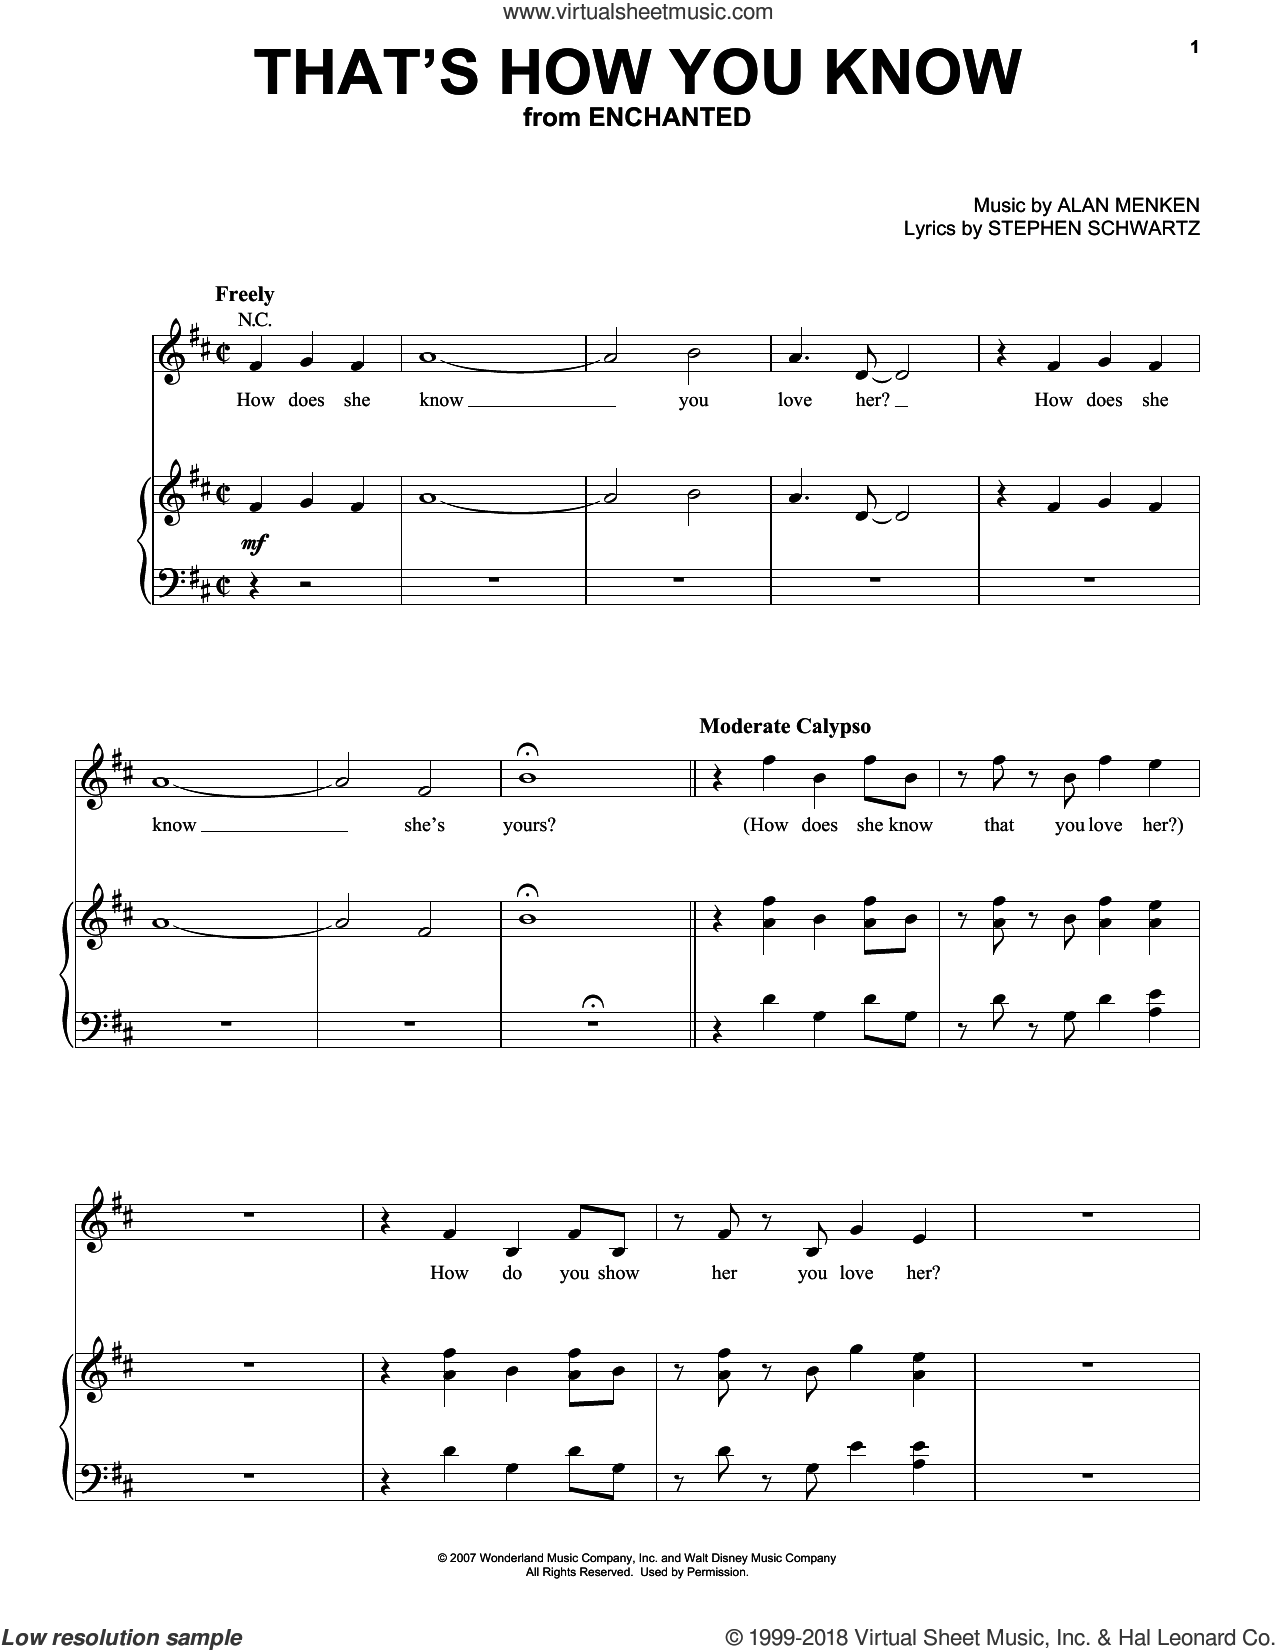 That's How You Know sheet music for voice, piano or guitar by Amy Adams, Alan Menken and Stephen Schwartz. Score Image Preview.